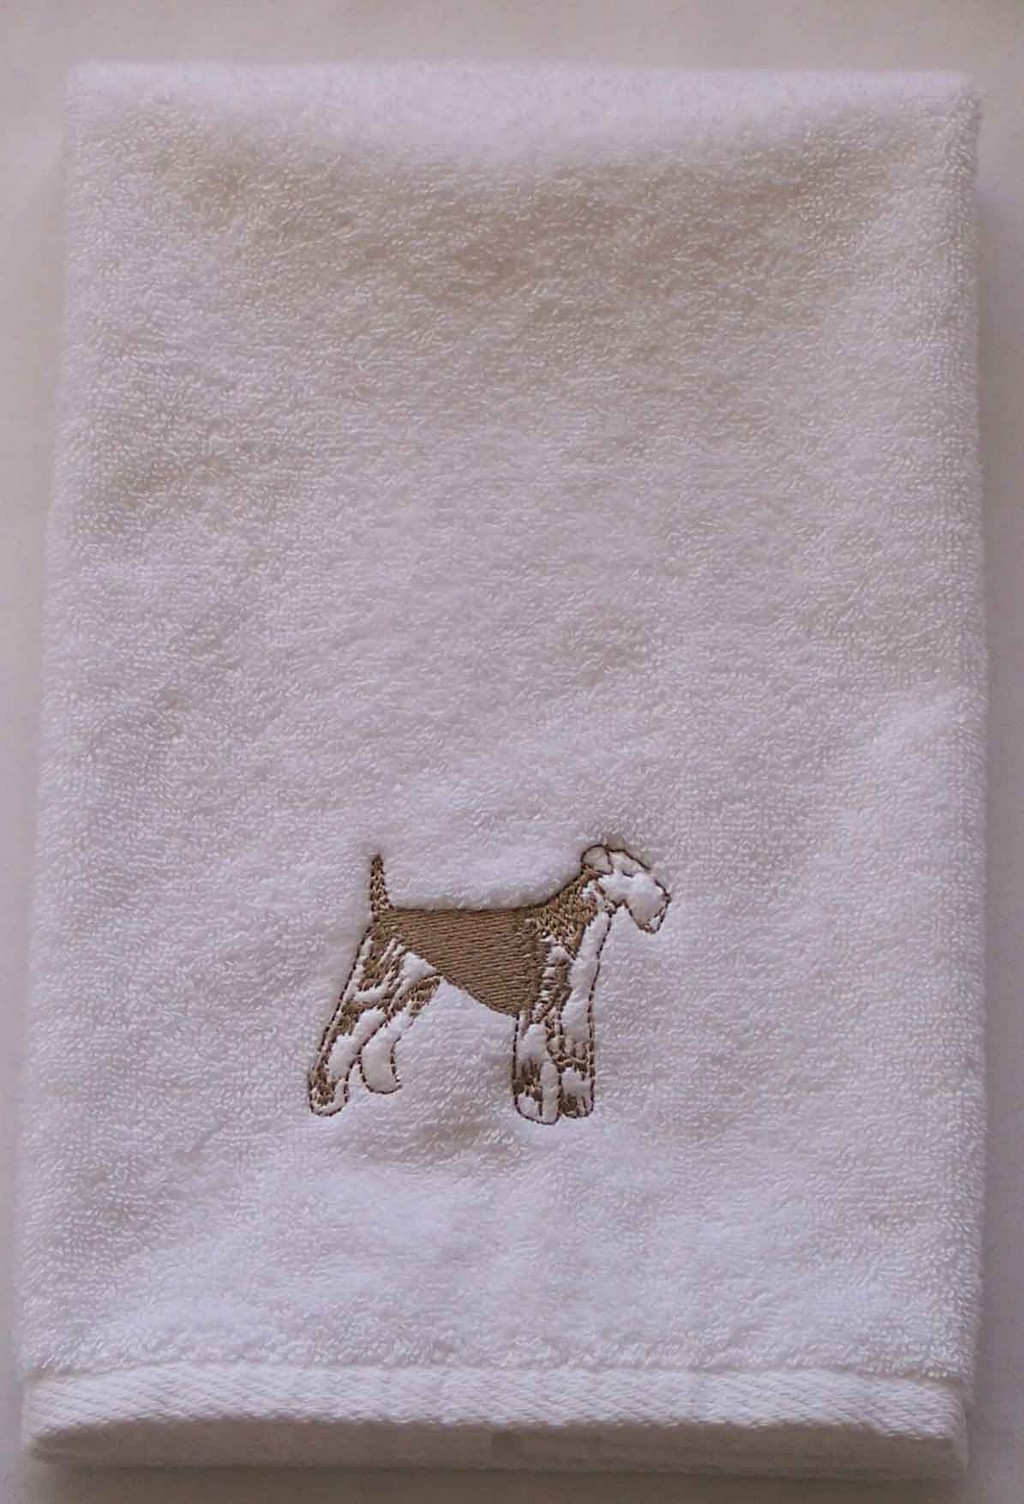 wholesale bath towels, vintage table linens, crib bedding, window curtains